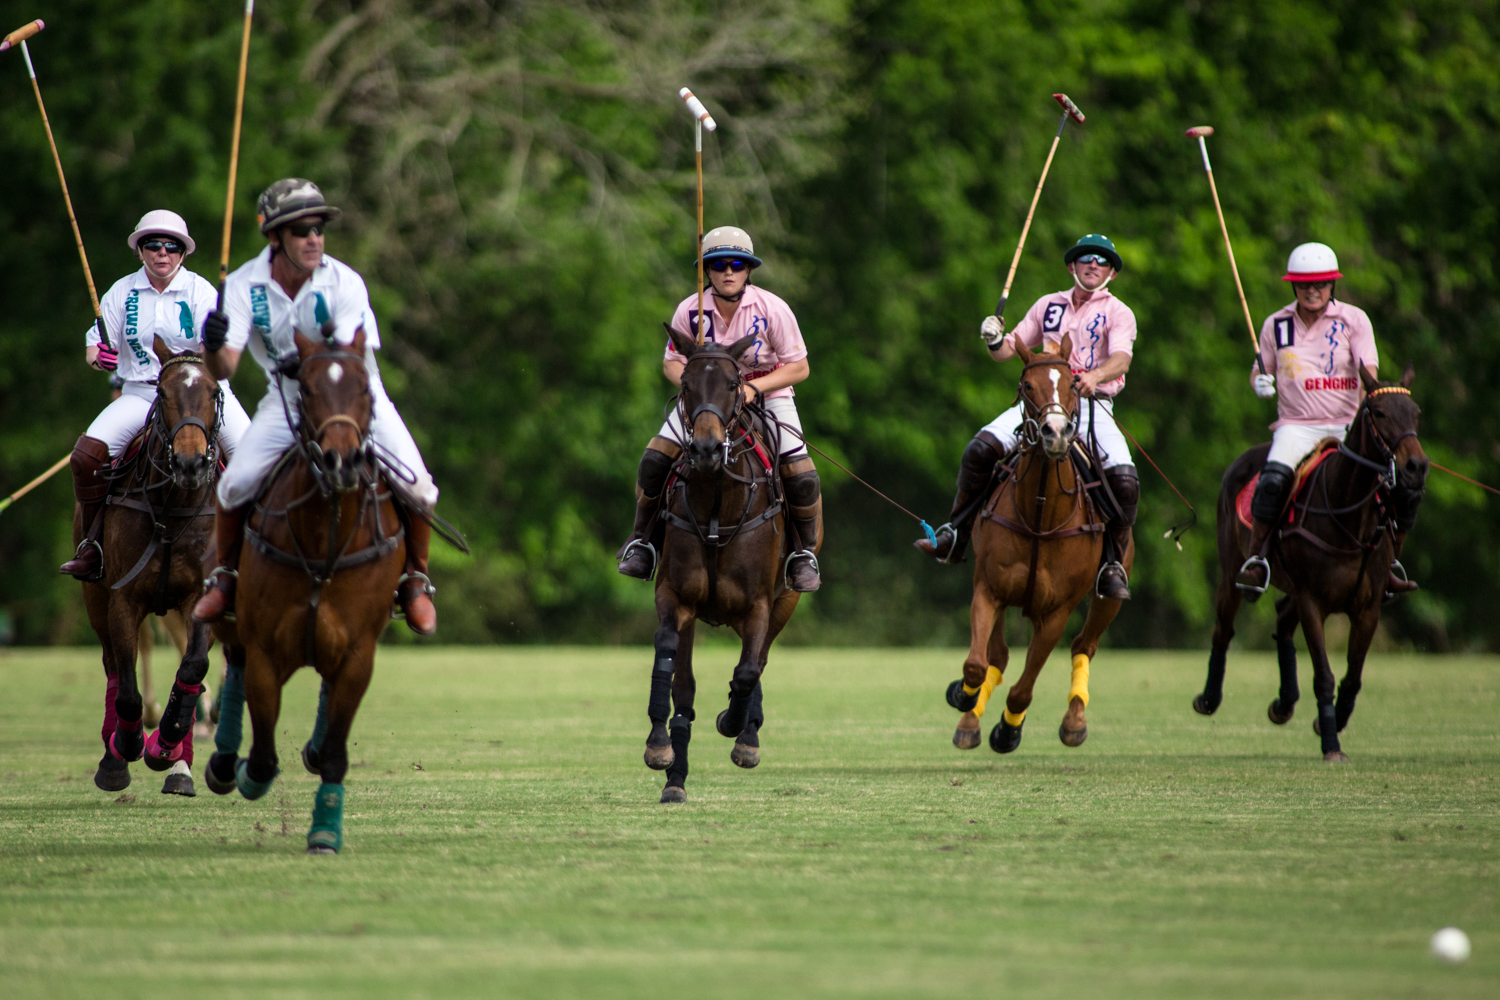 Hudspeth (middle) along with her teammates and opponents ride towards the ball during a scrimmage match at the Houston Polo Club on April 1, 2017. Polo teams are made up of both sponsors as well as professional players. Sponsors are usually independently wealthy and provide the funds for professional players to maintain their ponies as well as play.